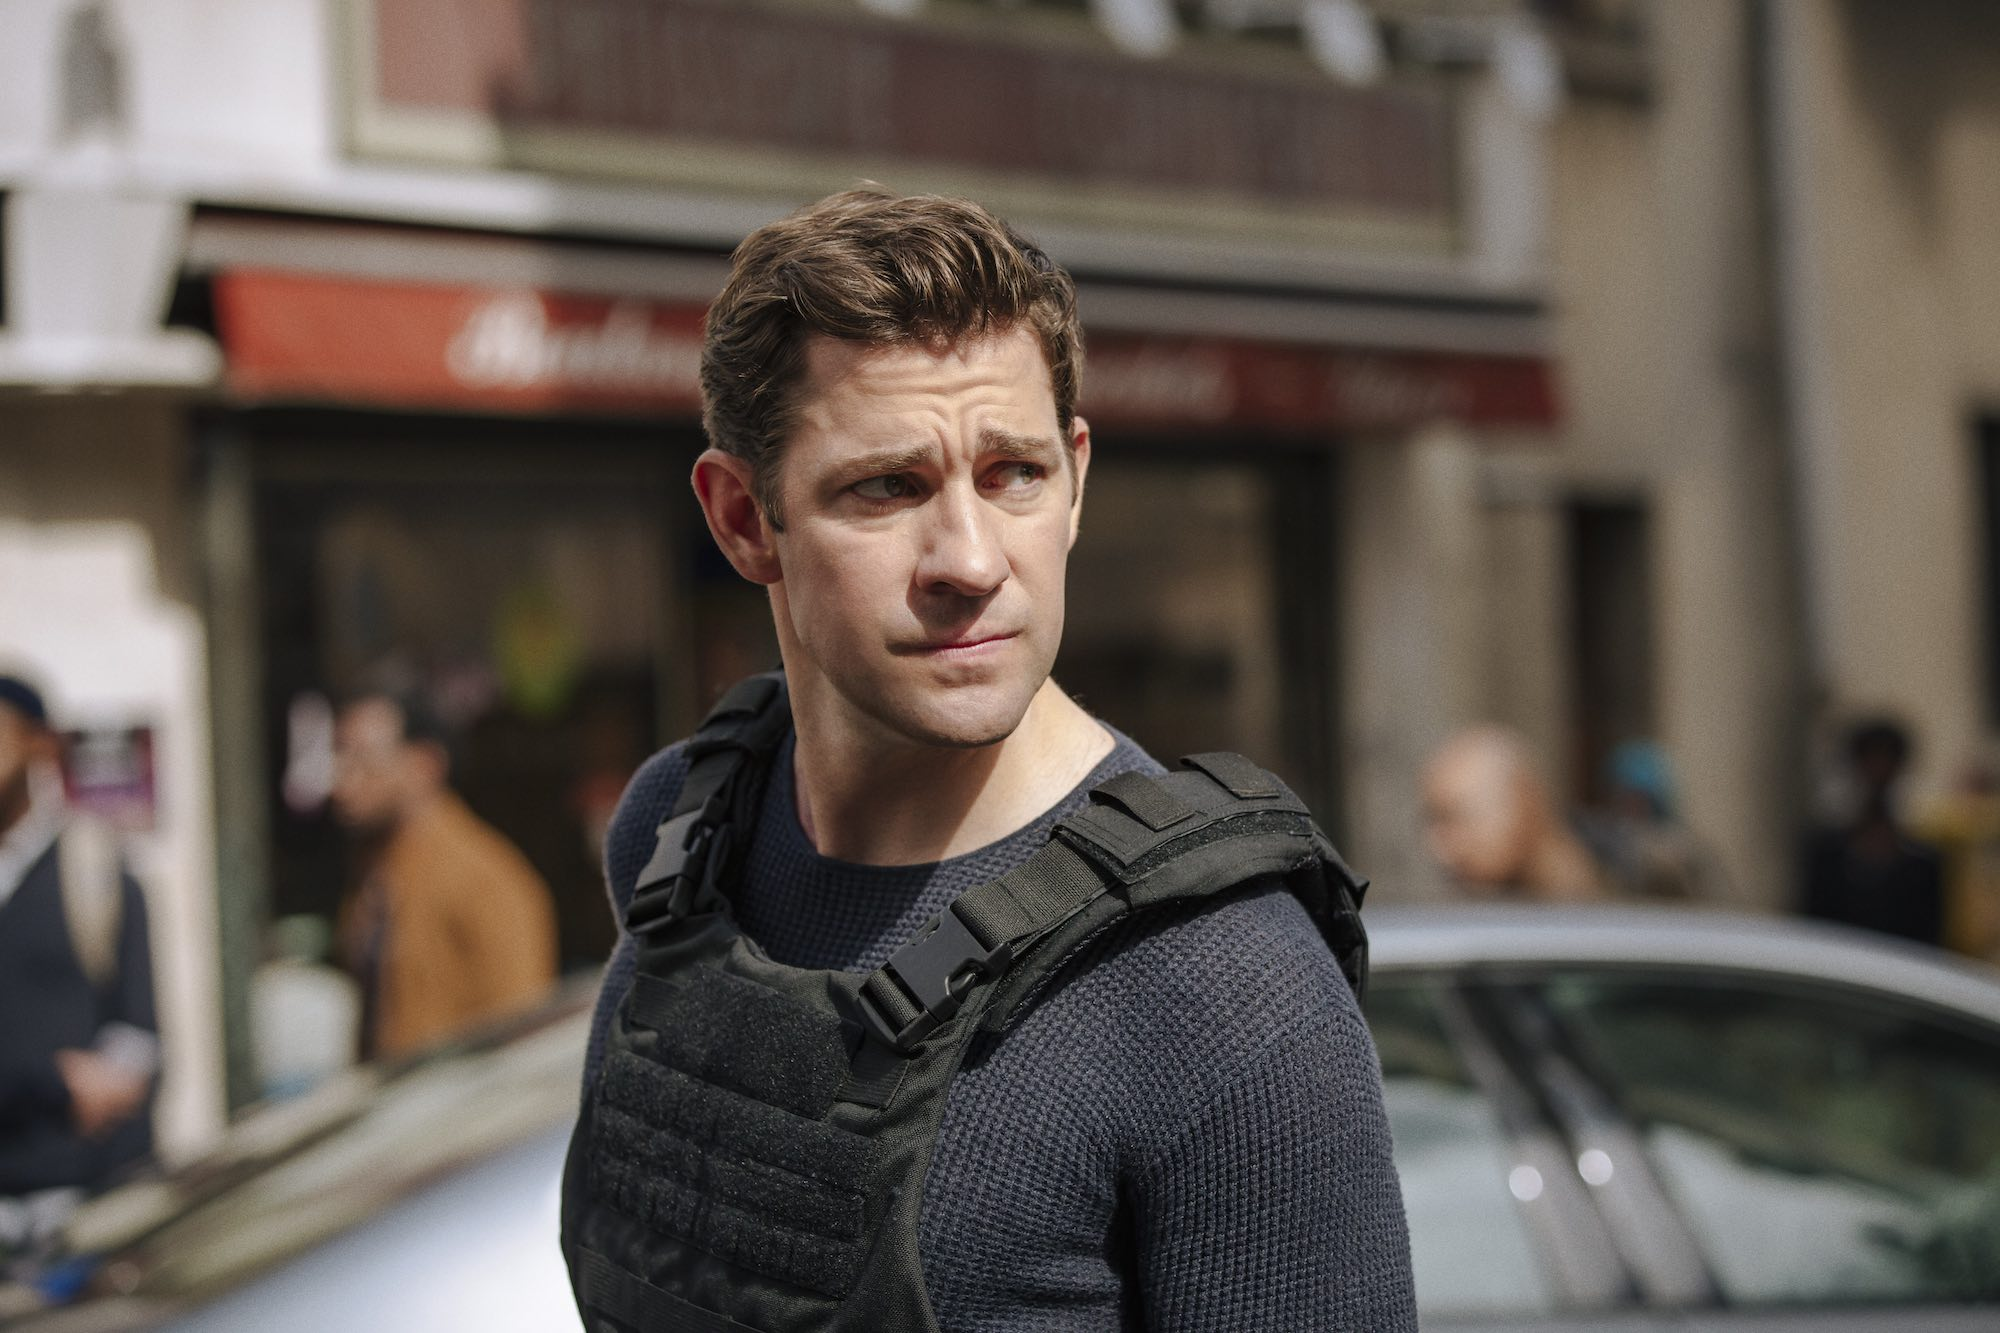 Tom Clancy's Jack Ryan: Amazon Previews John Krasinski Drama, Premiere Date Revealed